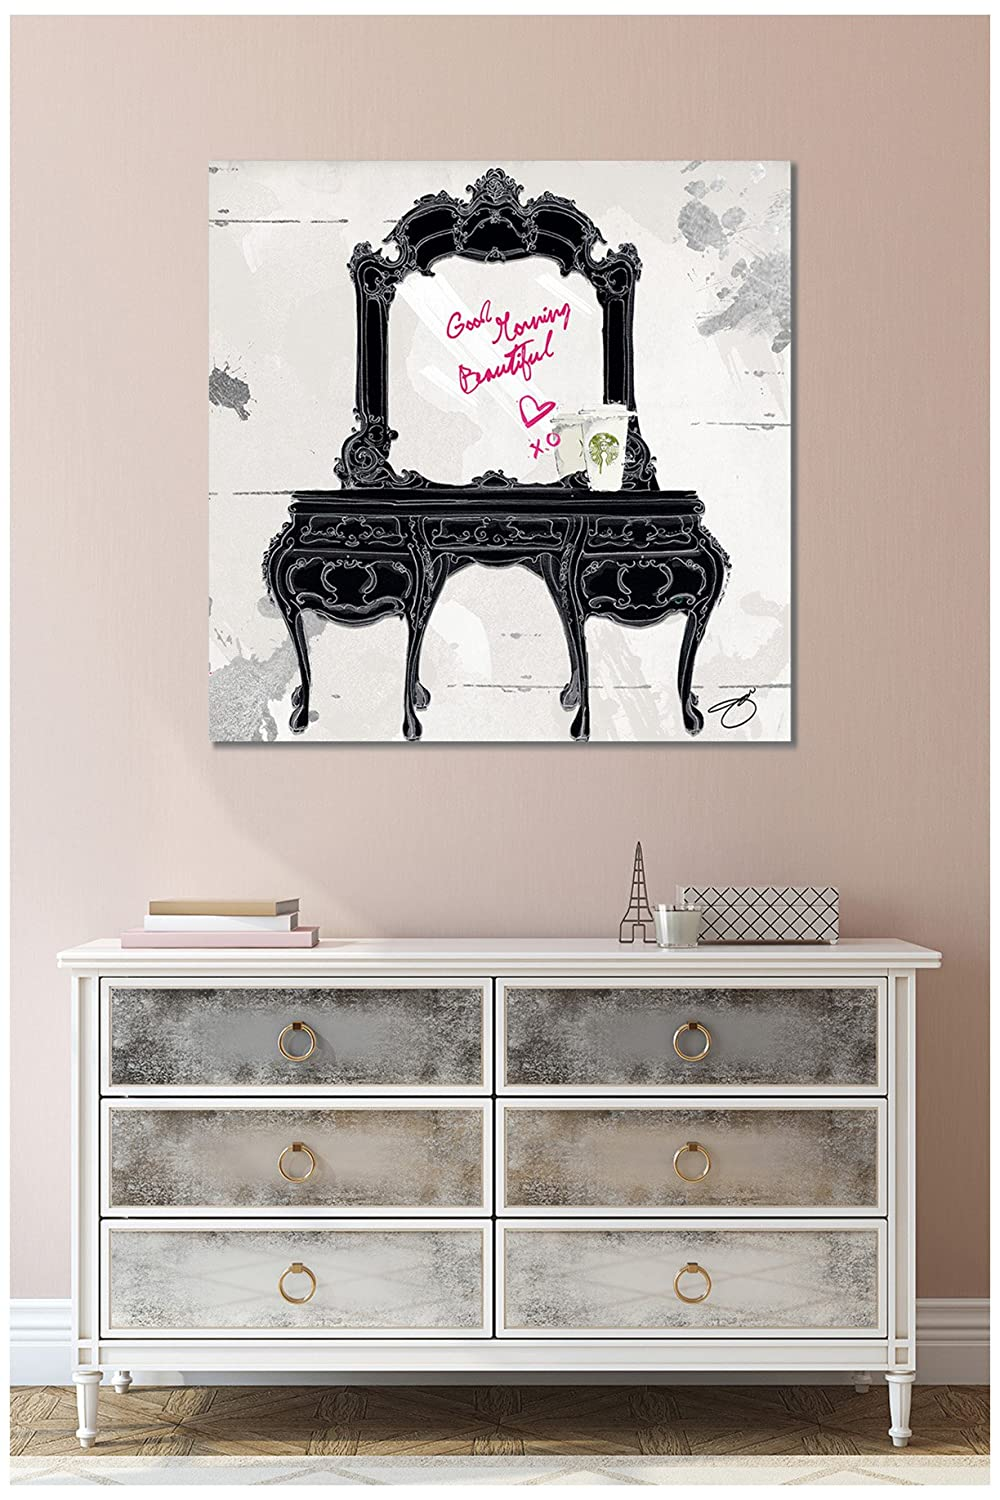 Picture Perfect International Giclee Stretched Canvas Art by by Jodi Good Morning Beautiful Wall-Decor 28 x 28 x 1.5